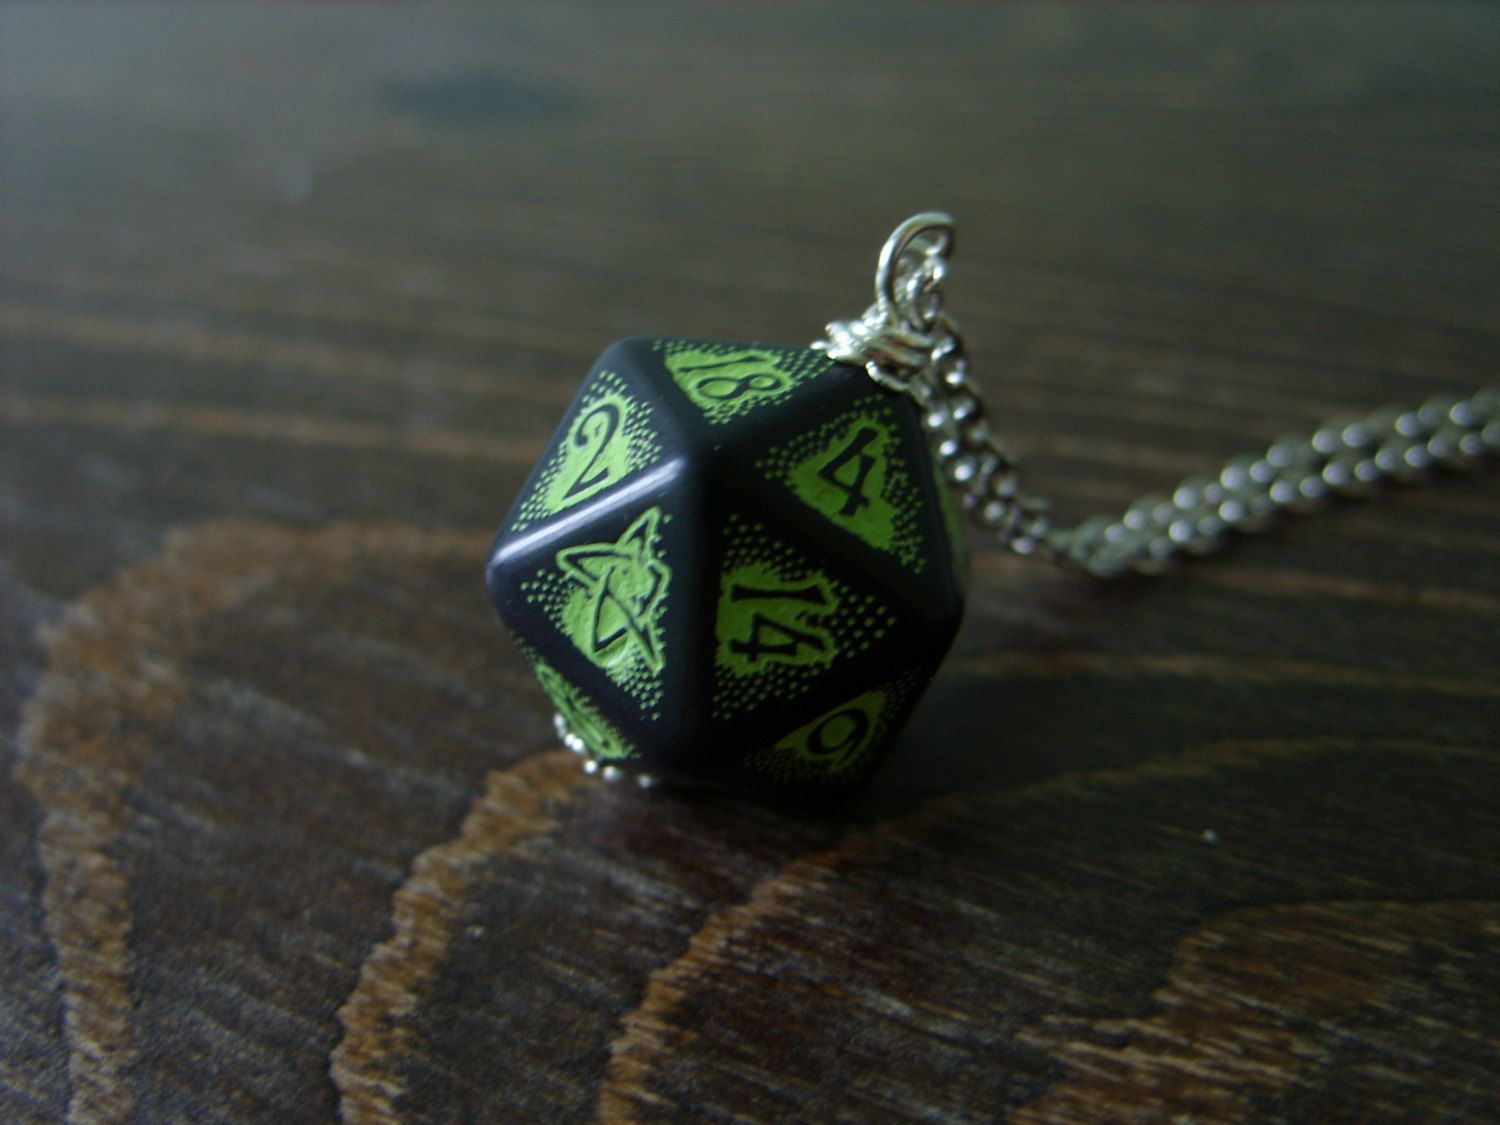 Call of cthulhu necklace d20 dice necklace dungeons and dragons dice call of cthulhu necklace d20 dice necklace dungeons and dragons dice jewelry elder sign geek pendant lovecraft pathfinder dice cthulhu by magestudio on etsy aloadofball Choice Image